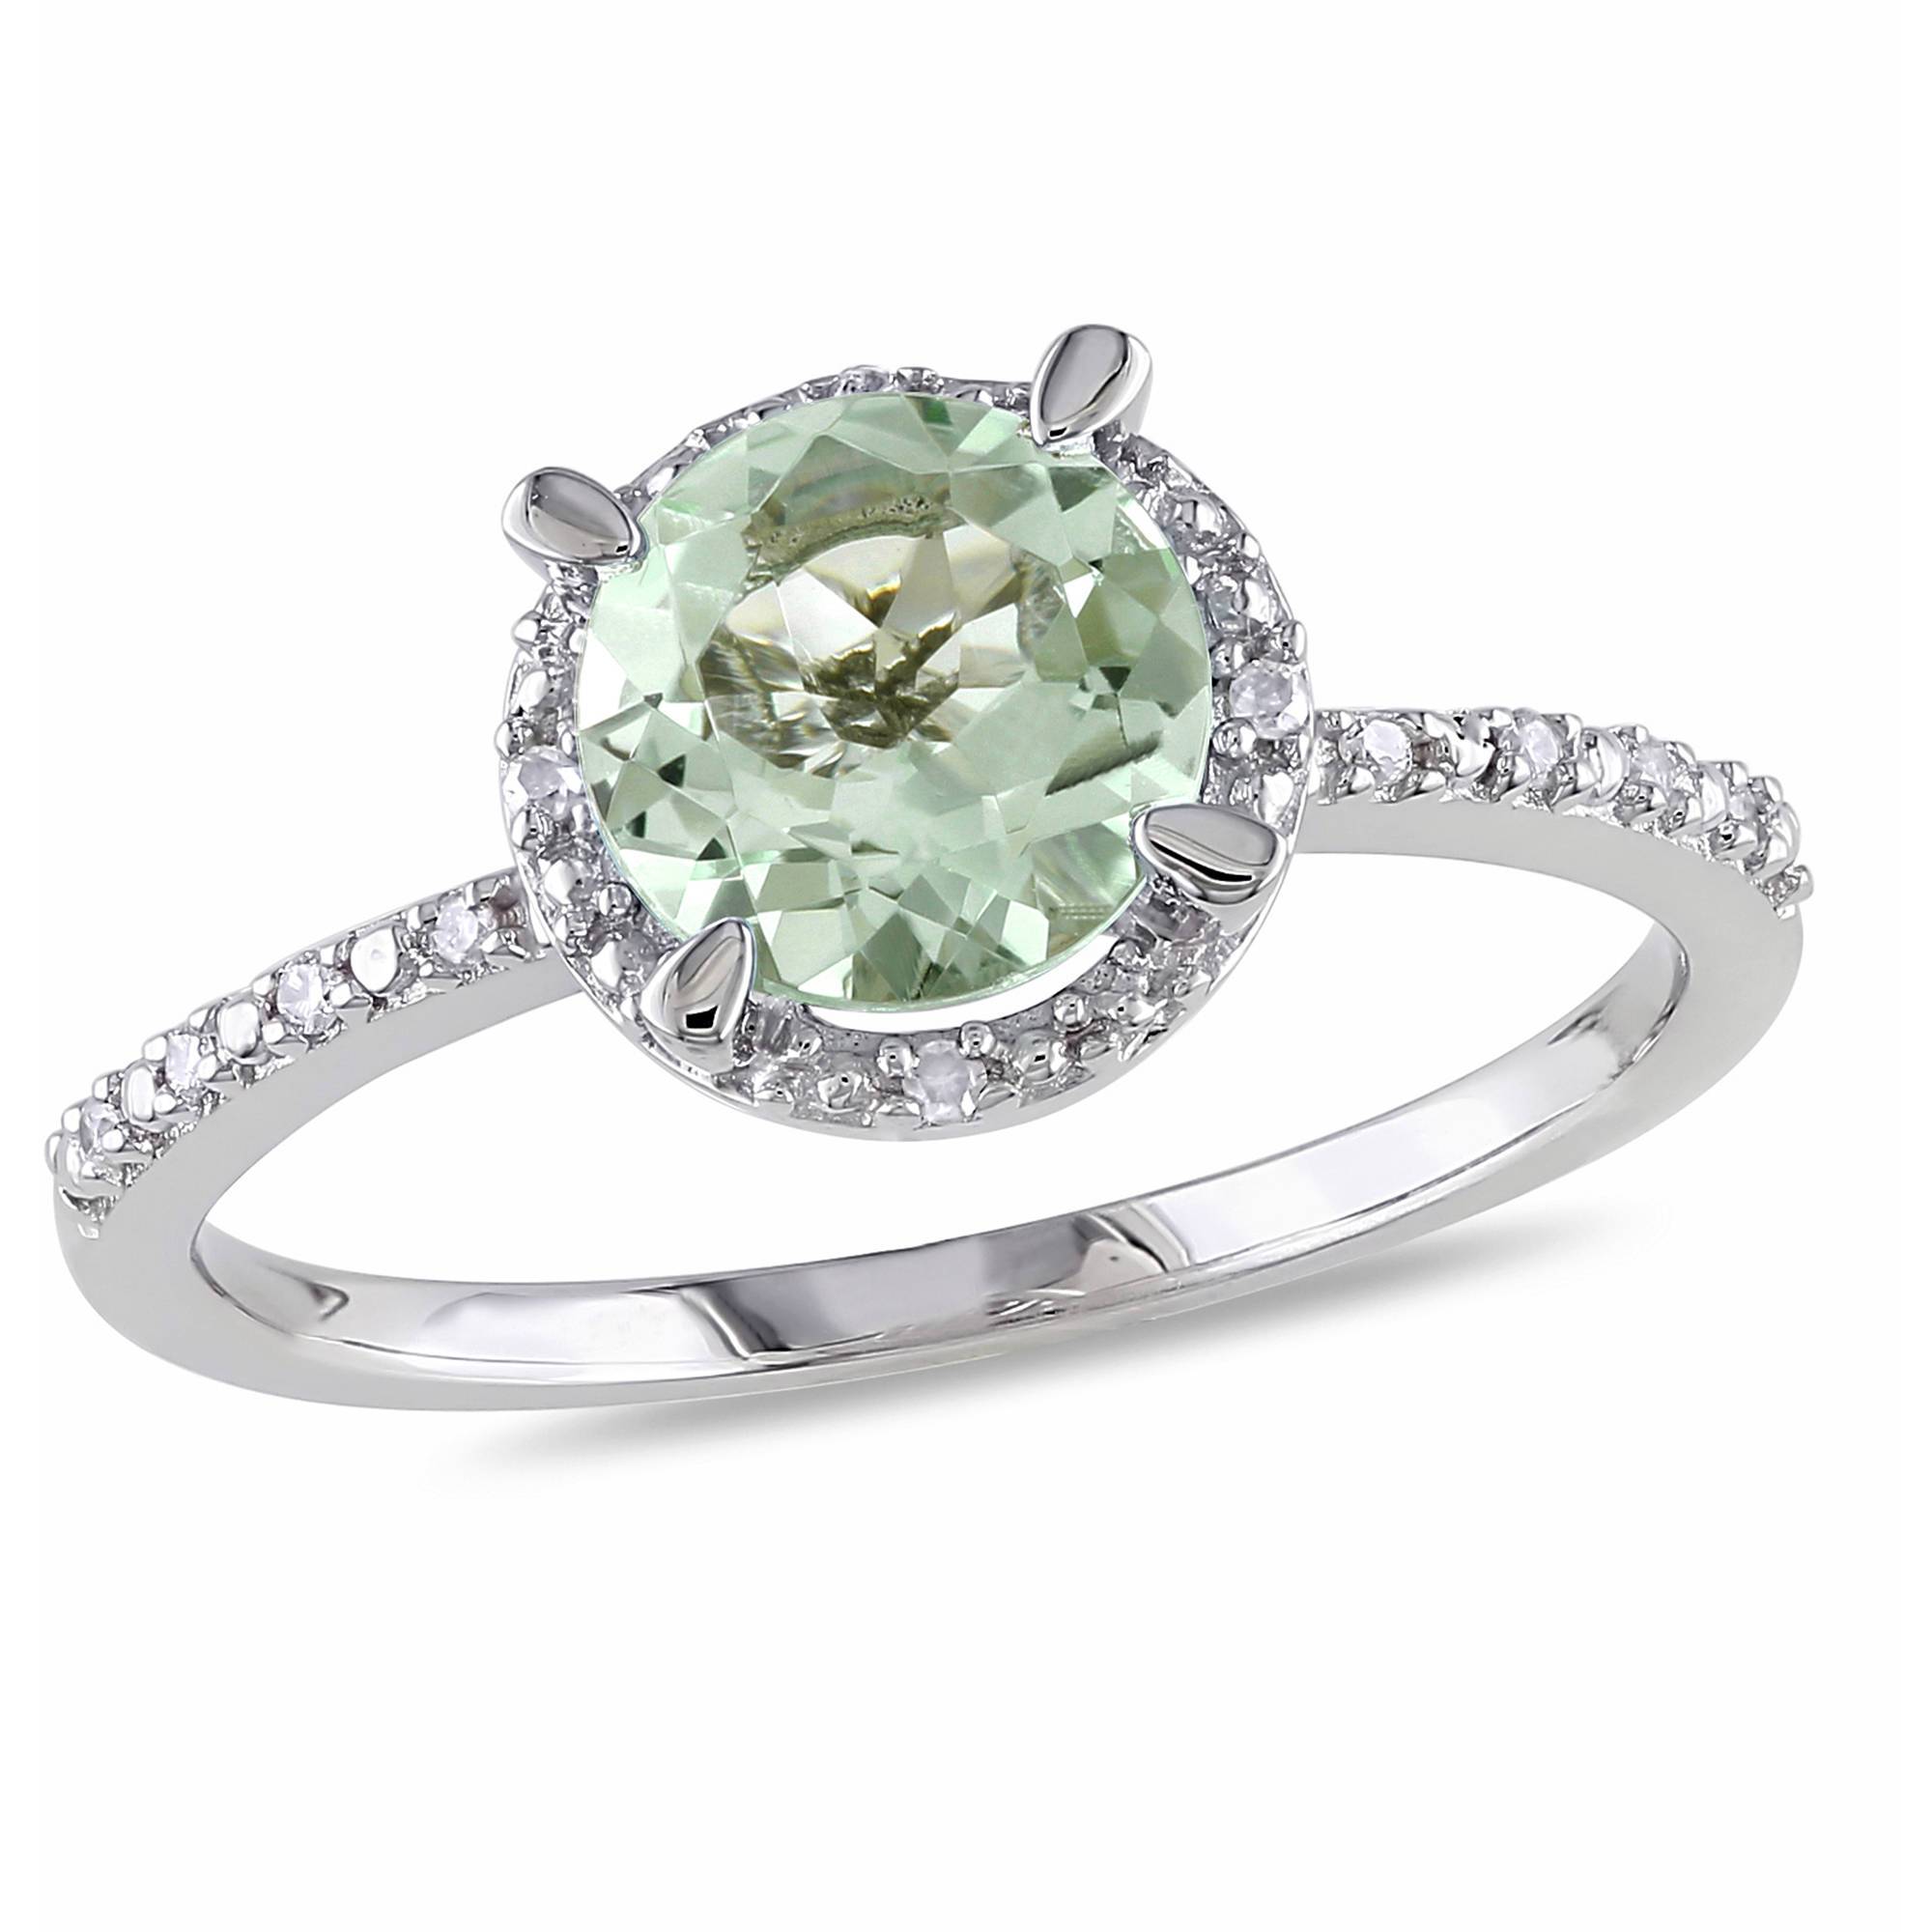 1-1/6 Carat T.G.W. Green Amethyst and Diamond Accent Sterling Silver Halo Ring